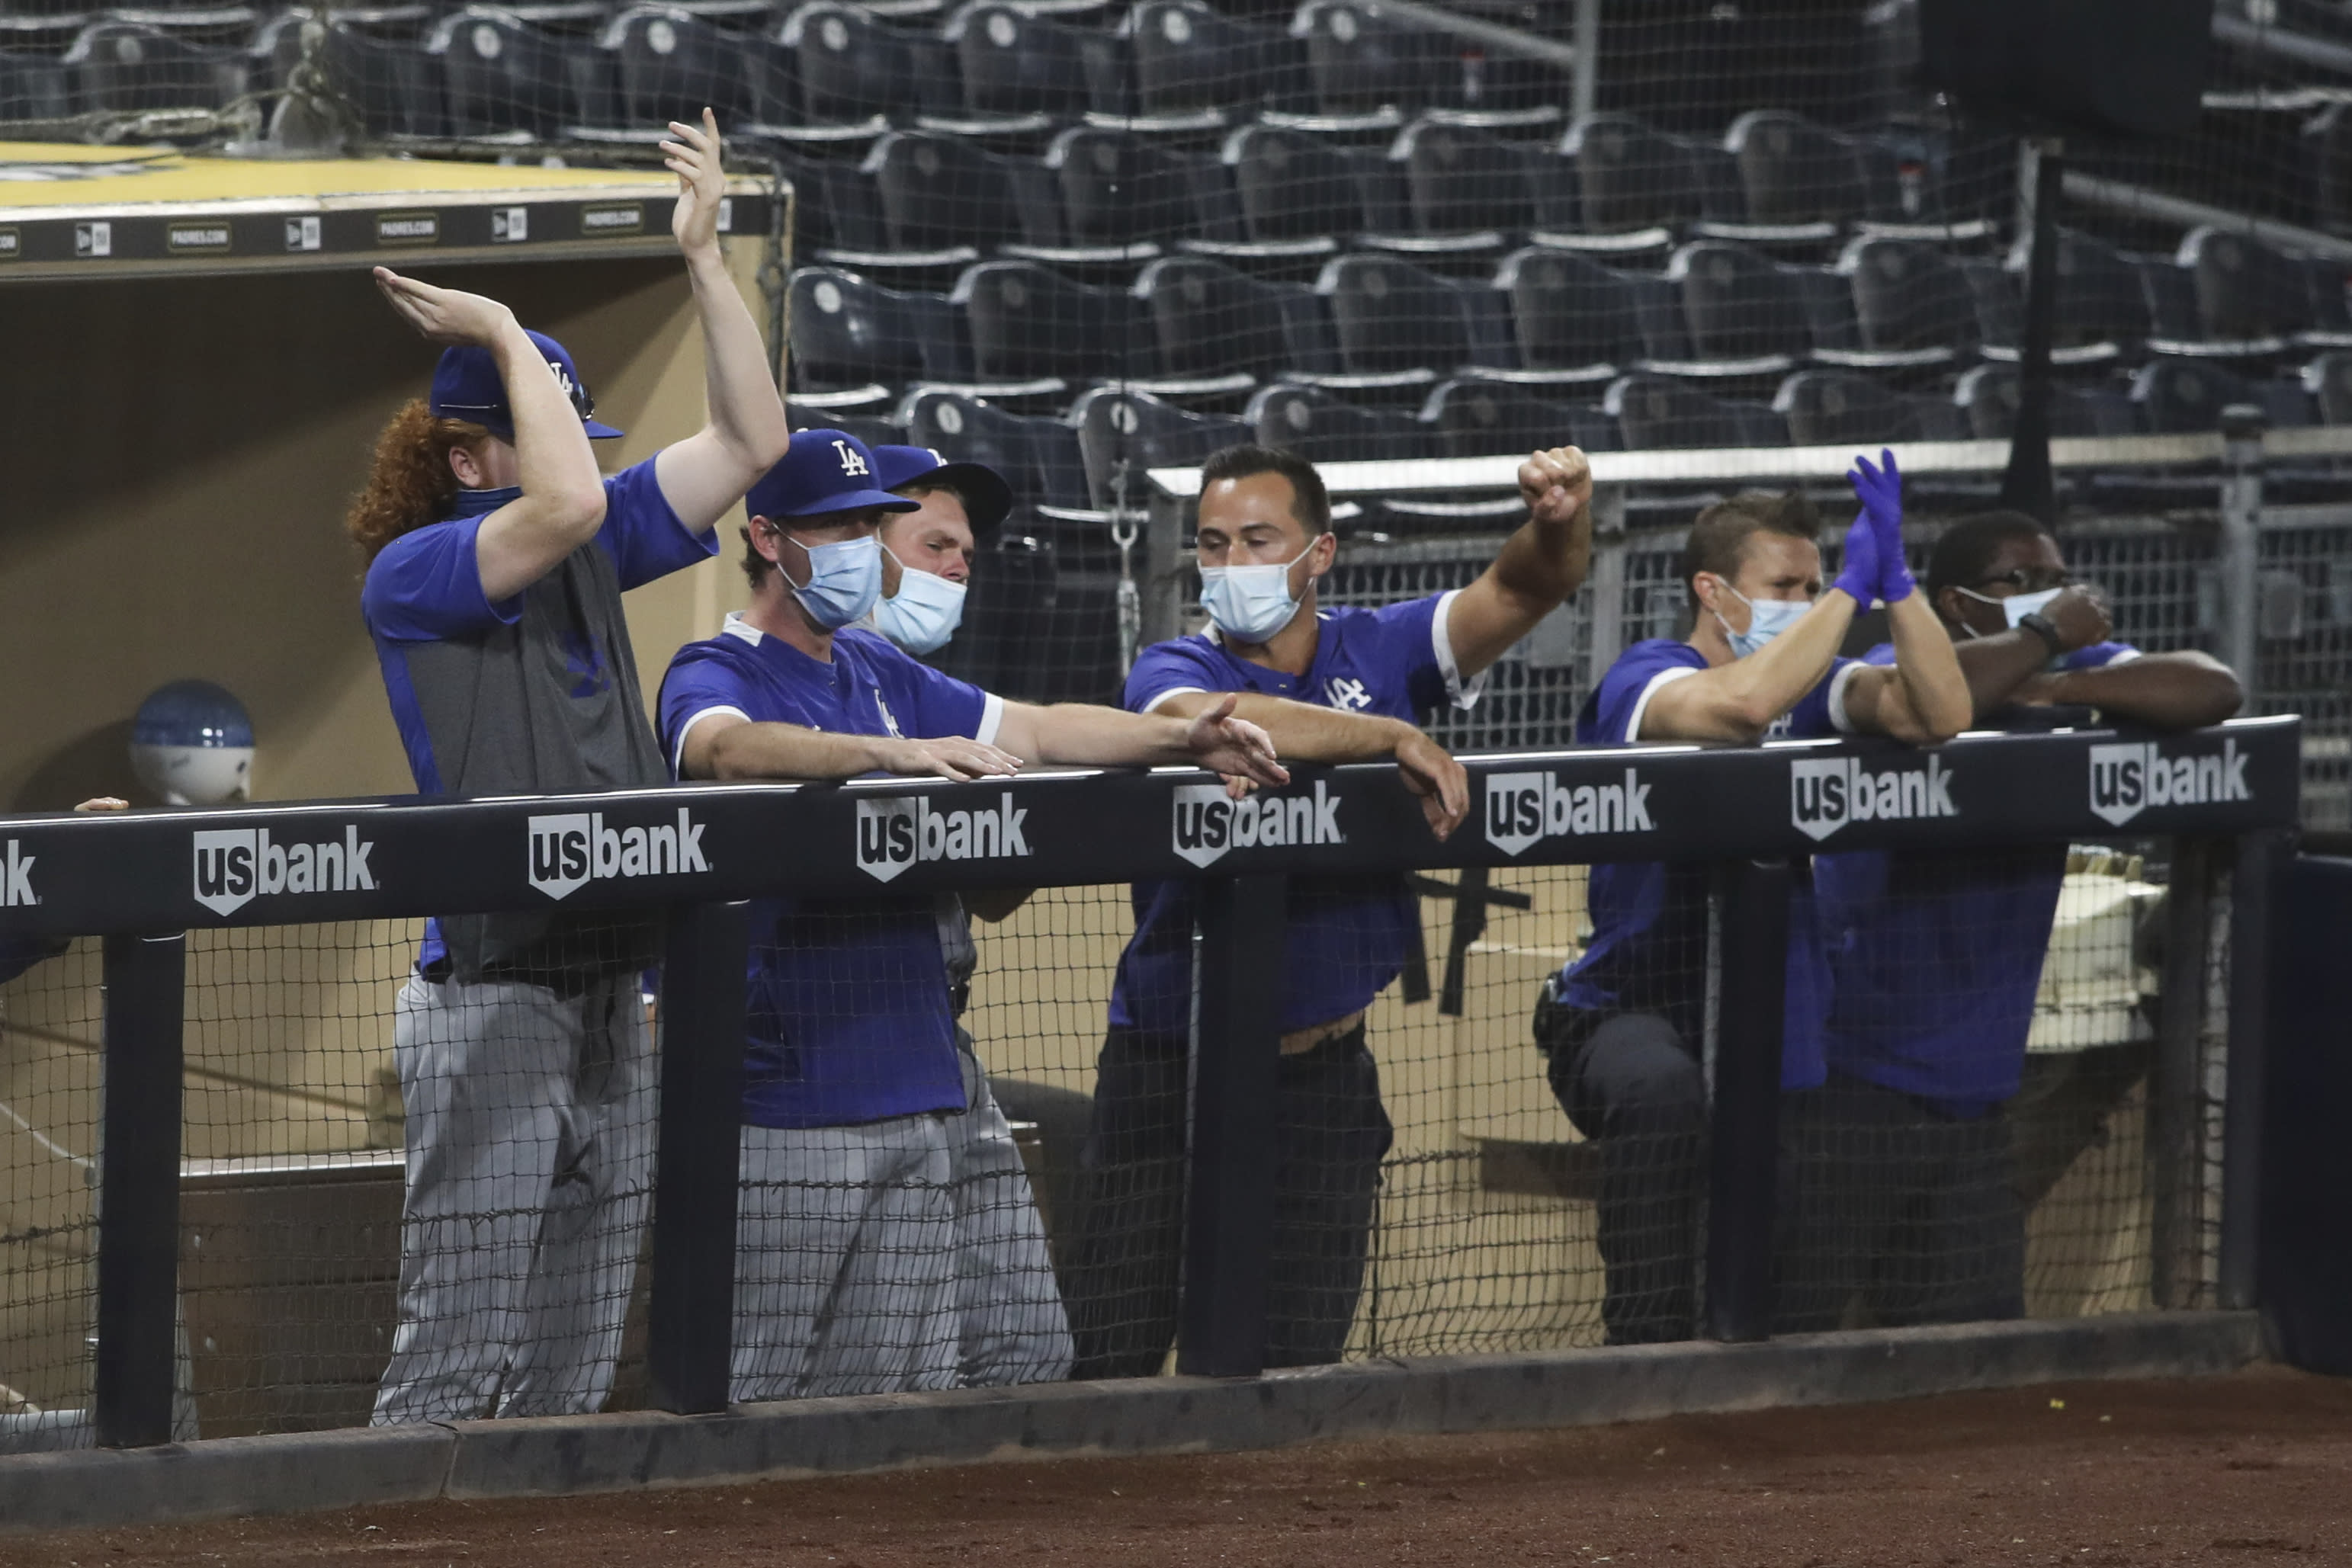 The Los Angeles Dodgers bench reacts after Edwin Rios hits a solo home run off San Diego Padres starting pitcher Zach Davies in the fifth inning of a baseball game Tuesday, Sept. 15, 2020, in San Diego. (AP Photo/Derrick Tuskan)